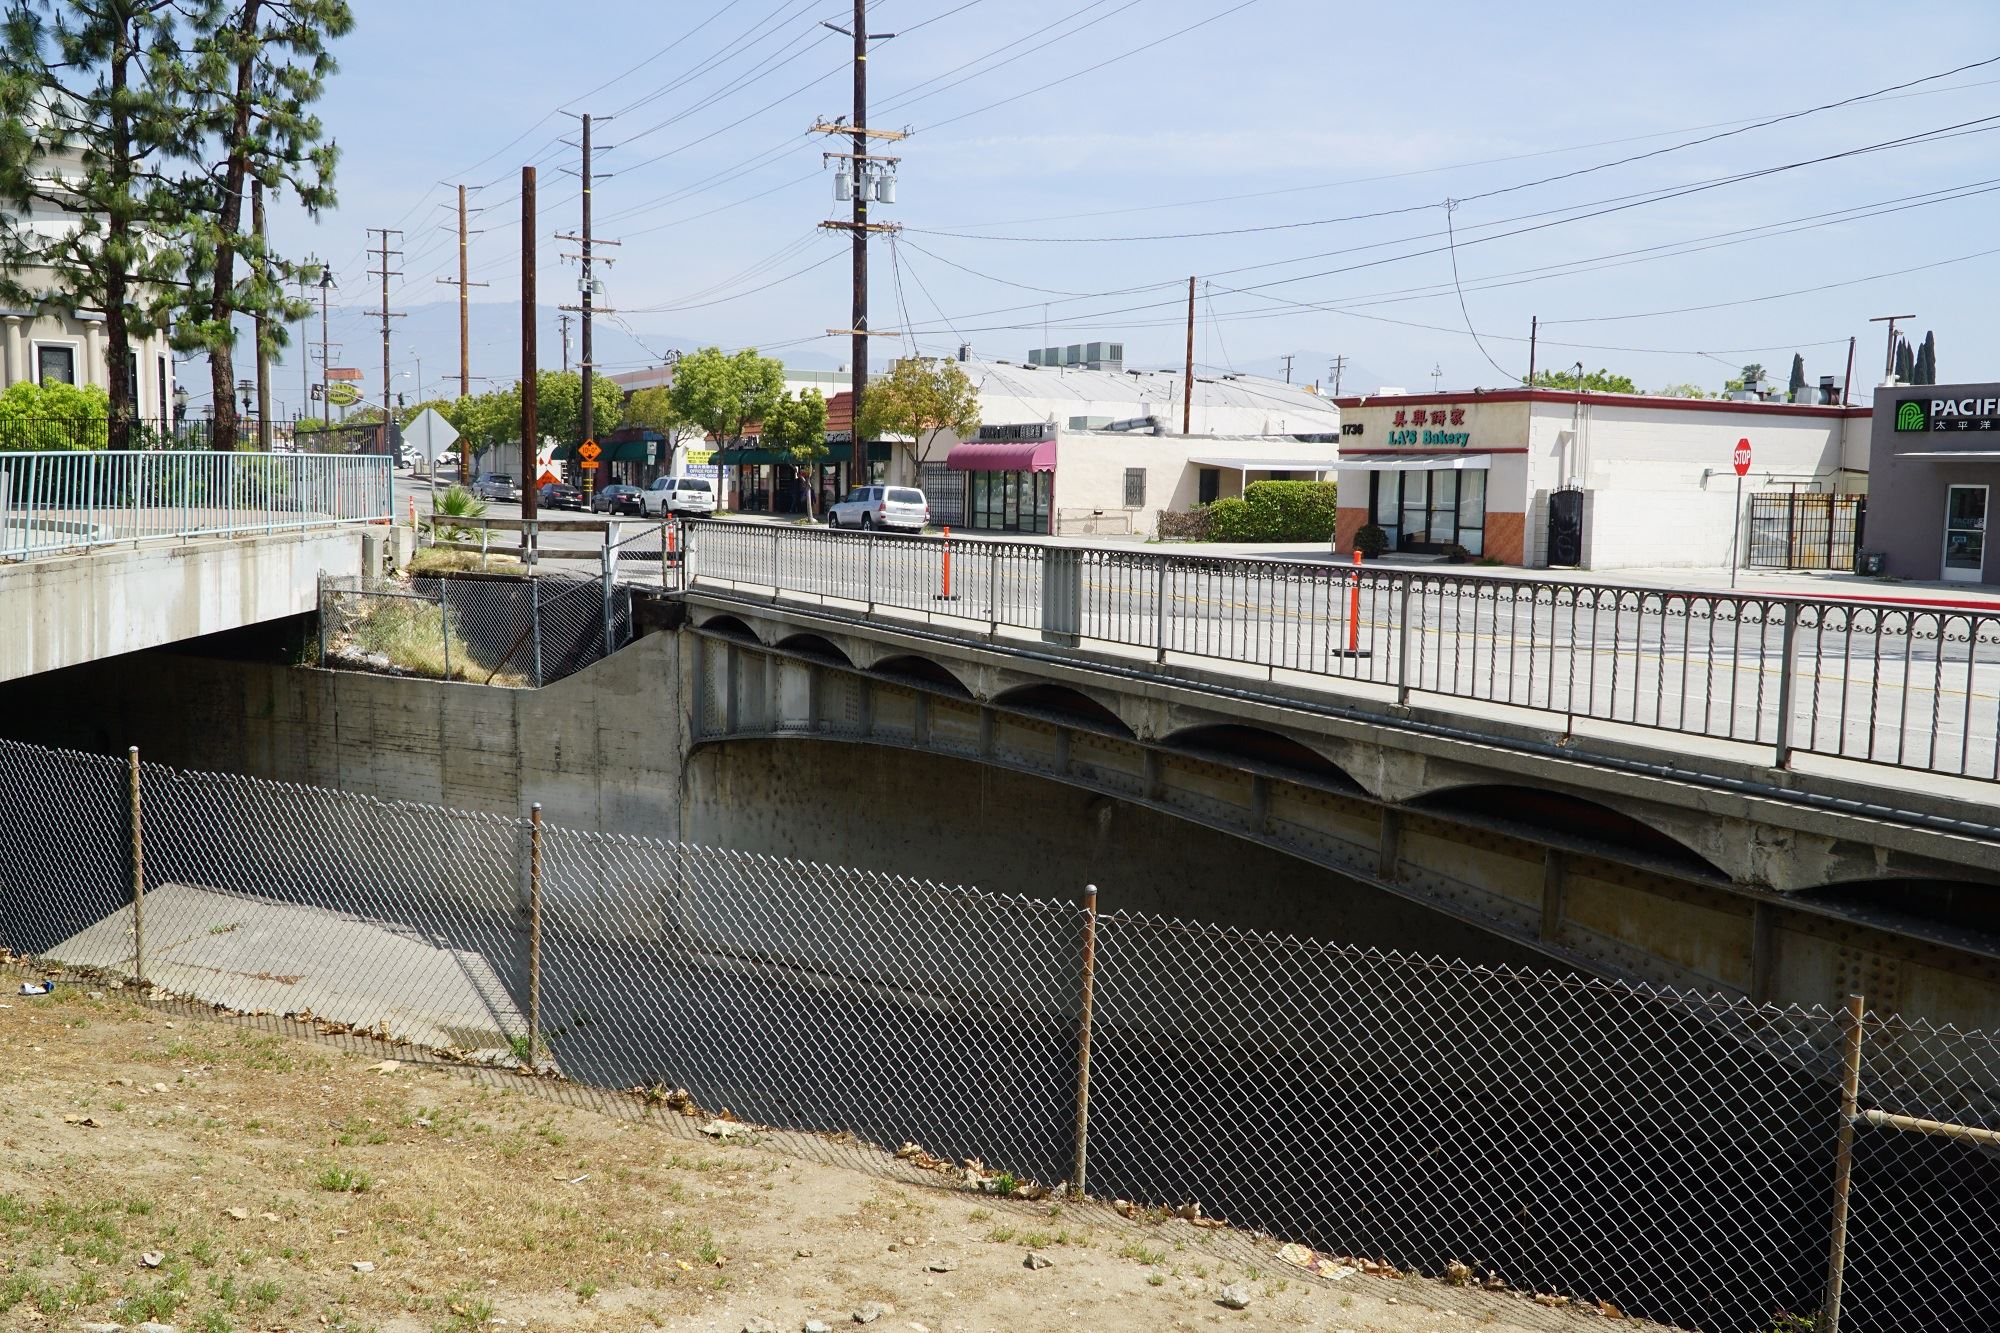 Roadway construction underway at the Alhambra Wash Bridge Replacement Project